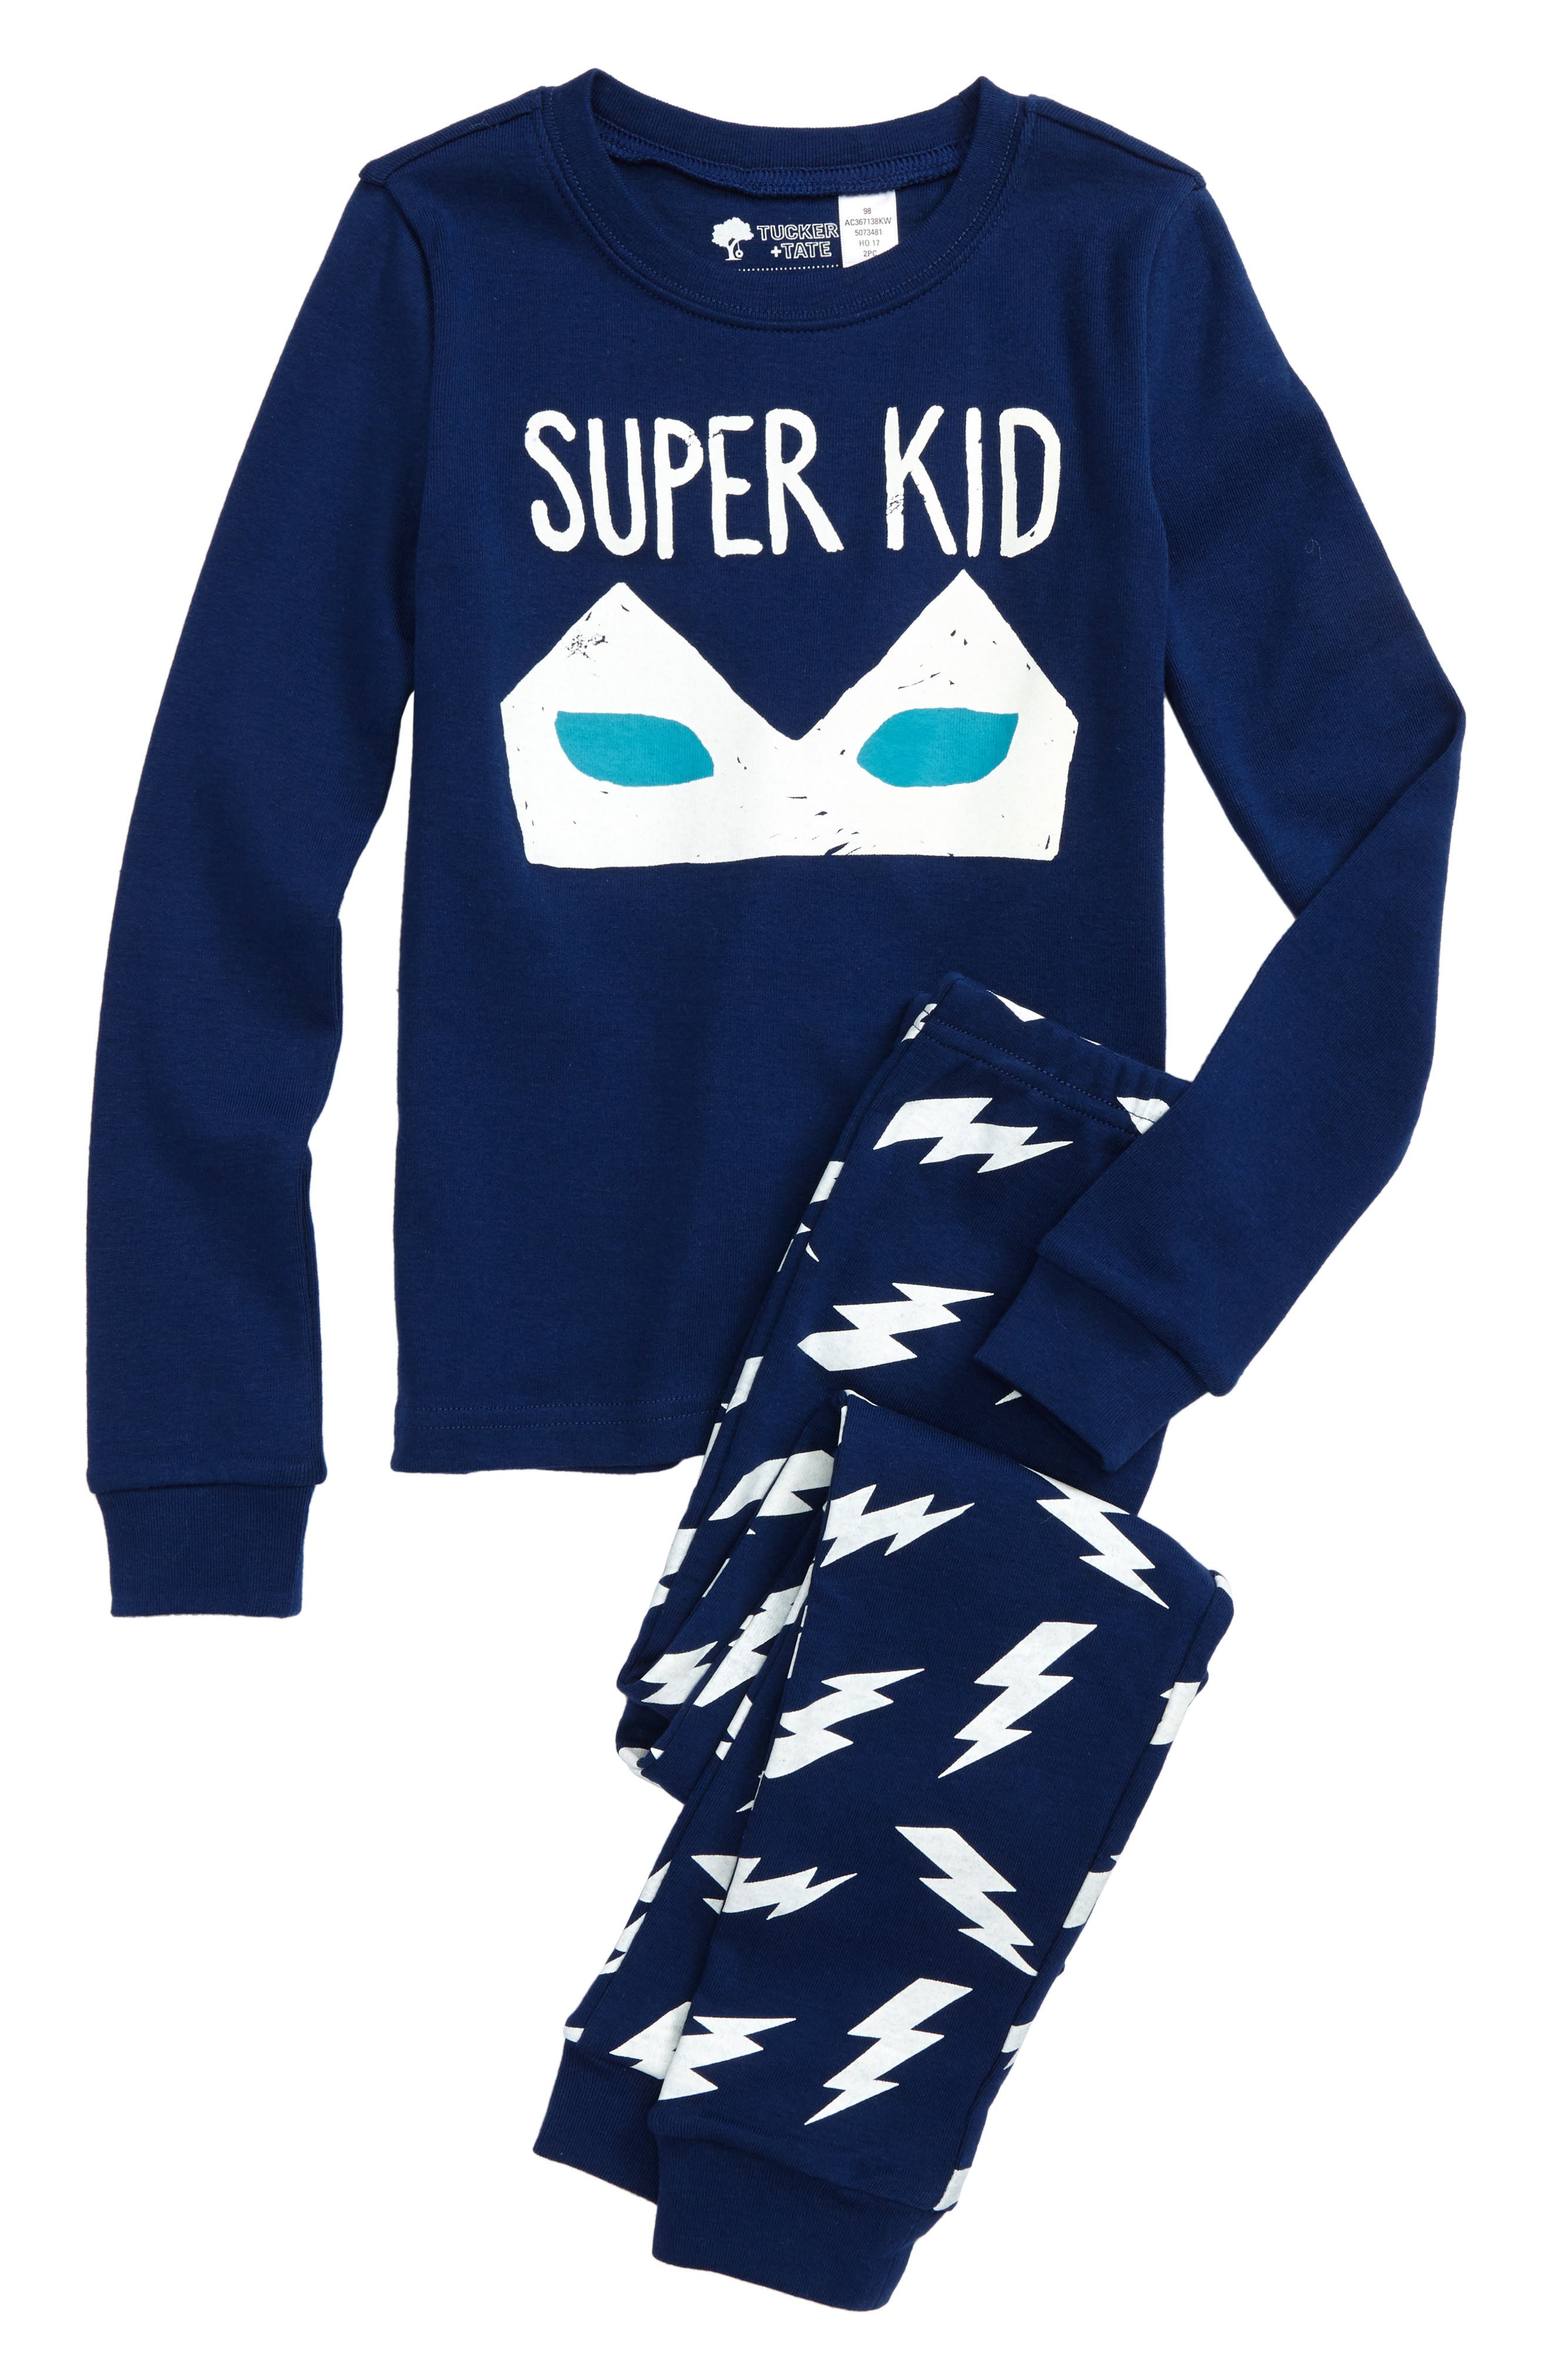 Super Kid Glow in the Dark Fitted Two-Piece Pajamas,                             Main thumbnail 1, color,                             Blue Estate Super Kid